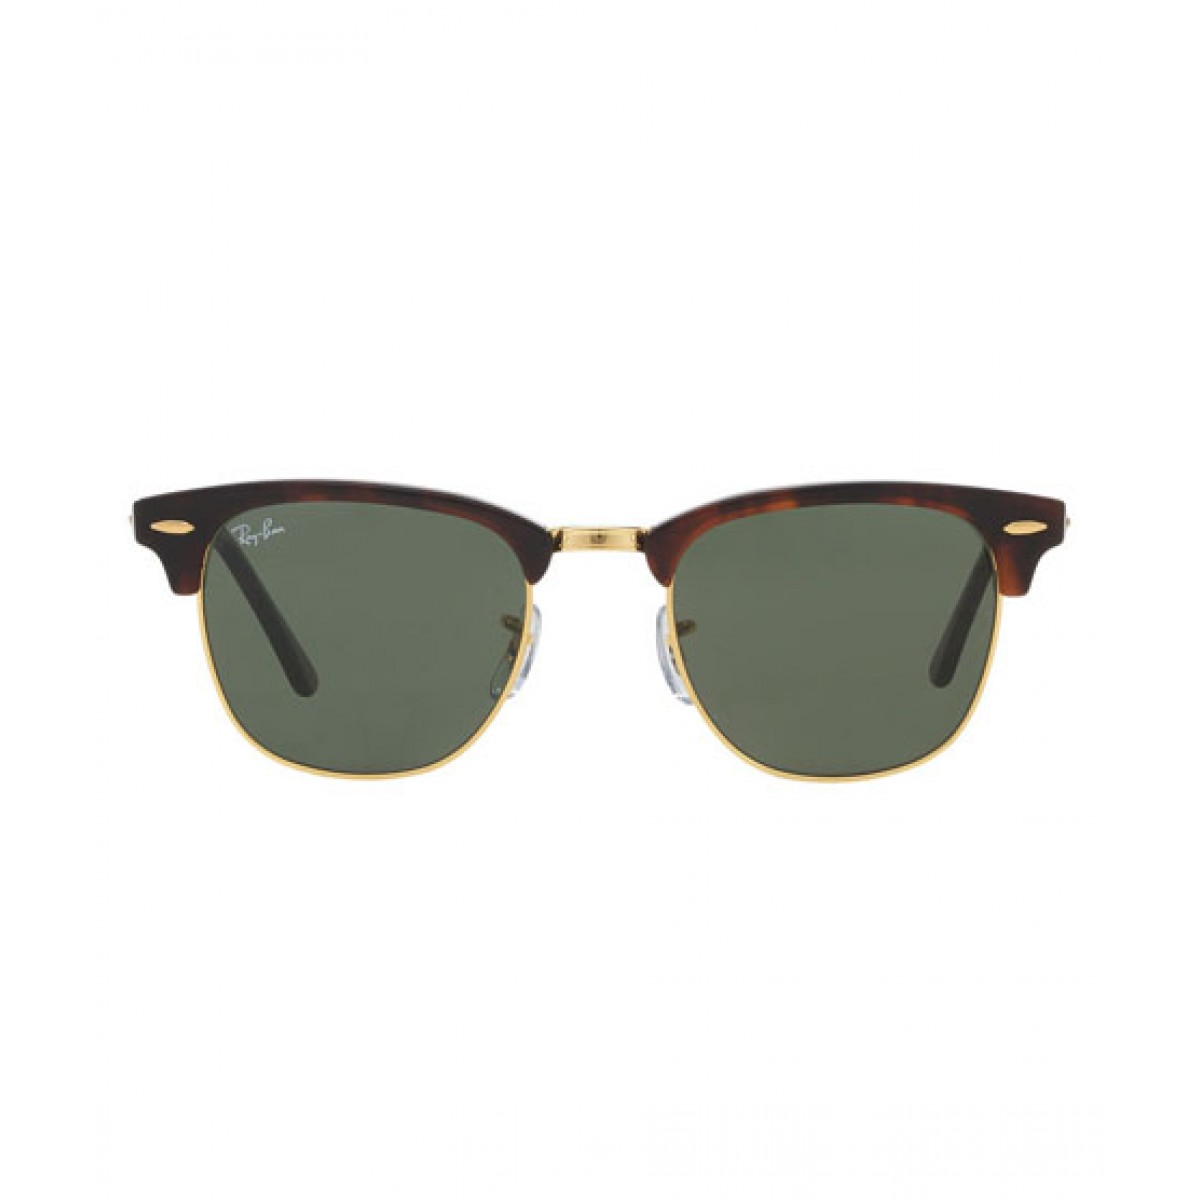 RayBan ClubMaster Non-Polarized Sunglasses RB3016 49